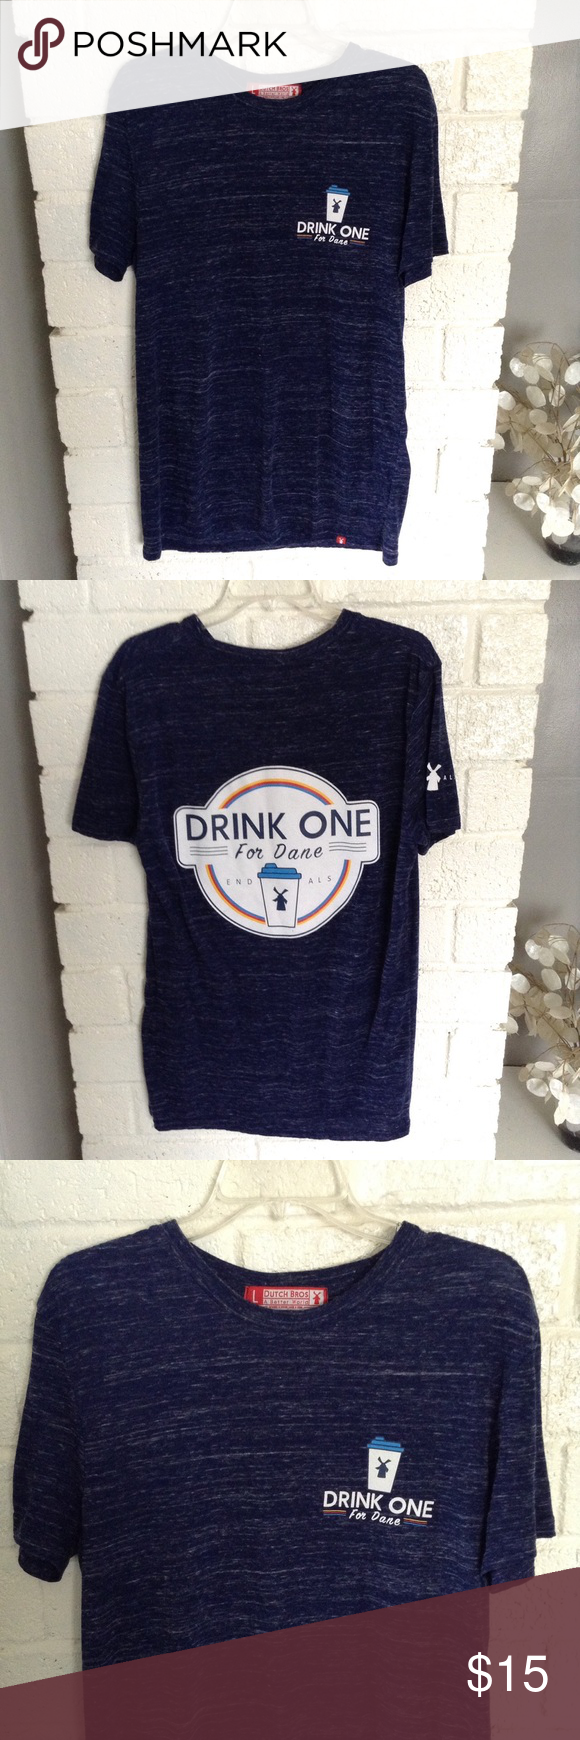 Dutch Bros Drink One For Dane End ALS  Tee Large *Dutch Bros Drink One For Dane End ALS T-shirt. *Blue, super soft. *Size Large *Approximate measurements laying flat:    Shoulder to shoulder 19    Under armpit to armpit 23    Length 28 *In great gently used condition. *Smoke free home. *Thanks for looking! Dutch Bros Shirts Tees - Short Sleeve #dutchbros Dutch Bros Drink One For Dane End ALS  Tee Large *Dutch Bros Drink One For Dane End ALS T-shirt. *Blue, super soft. *Size Large *Approximate #dutchbros